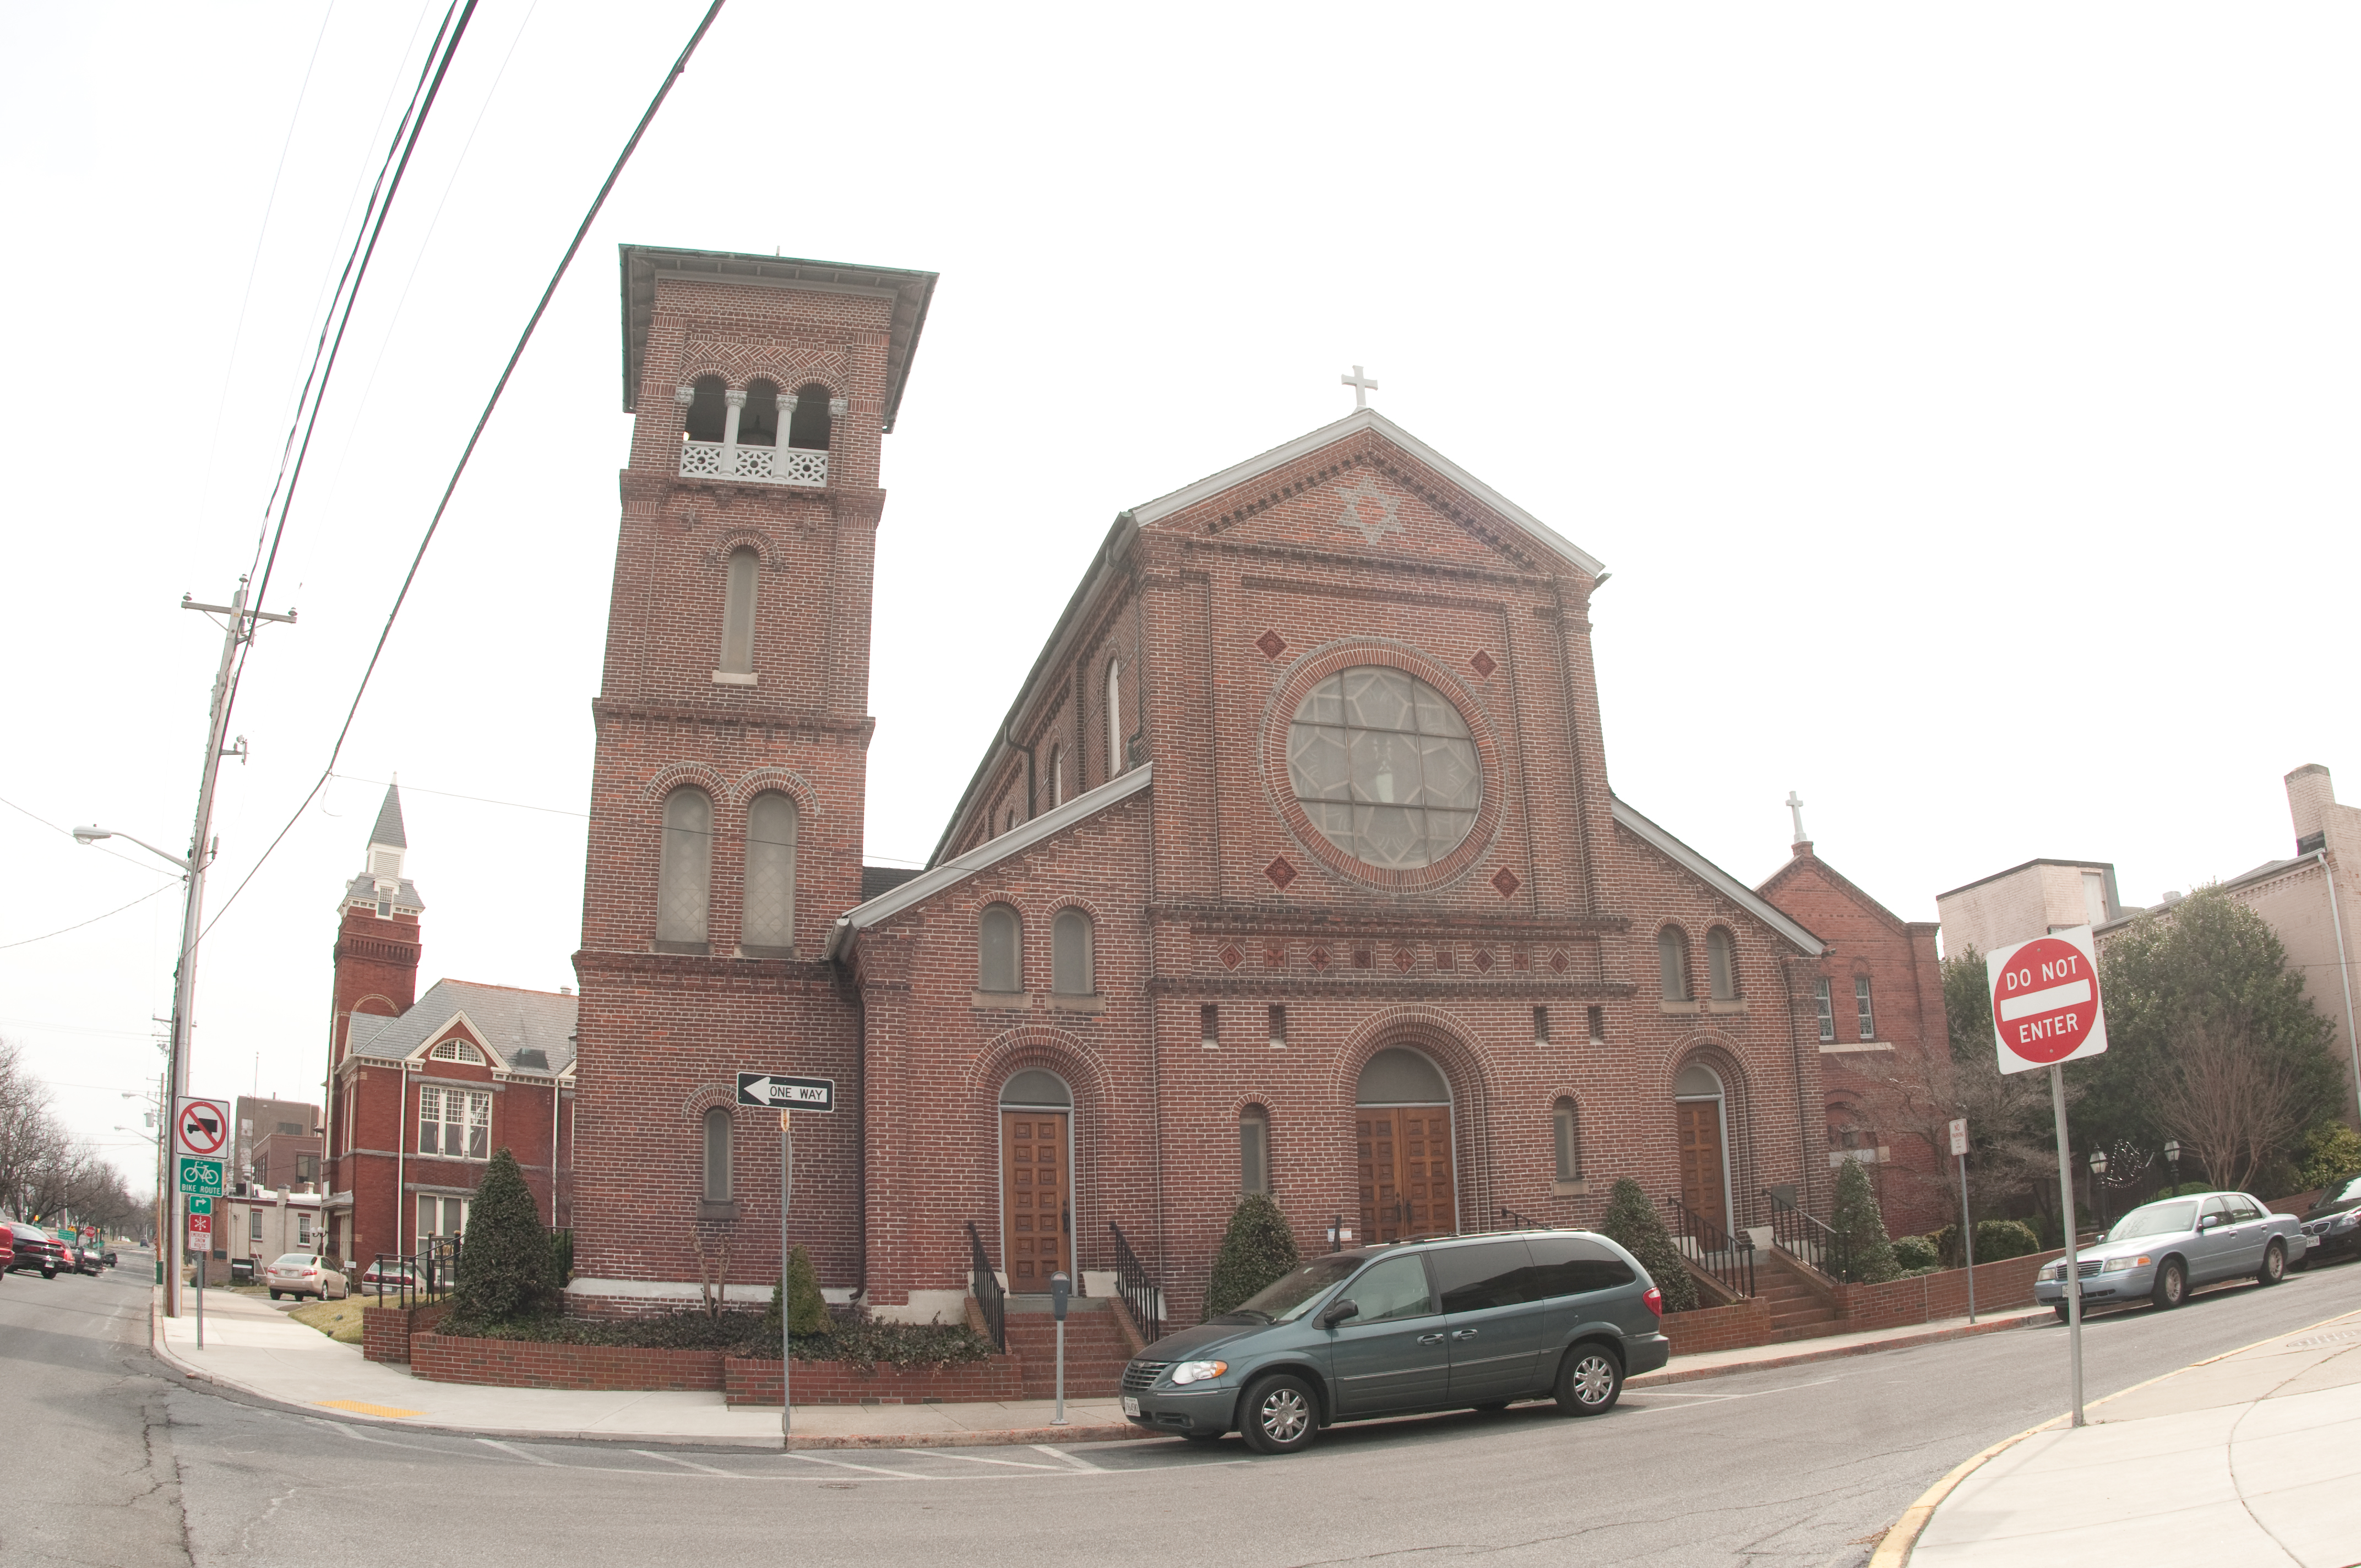 St. Peter's Church at the corner of St. Peter's and Church Sts. in downtown Salisbury